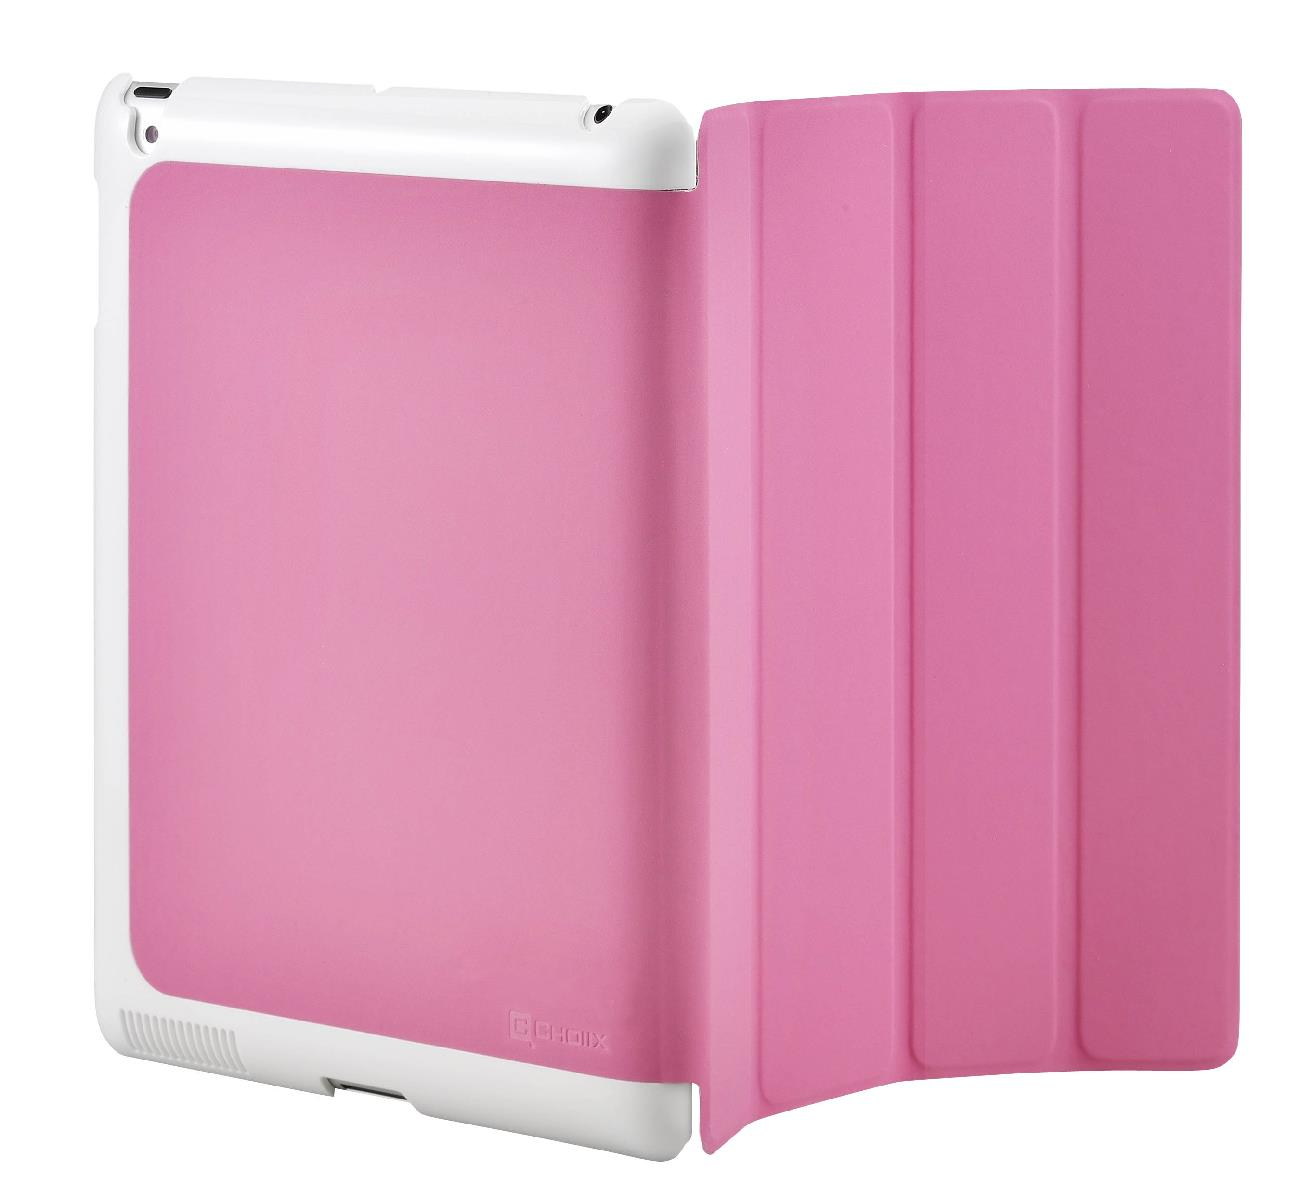 Coolermaster Wake Up Folio - Pink